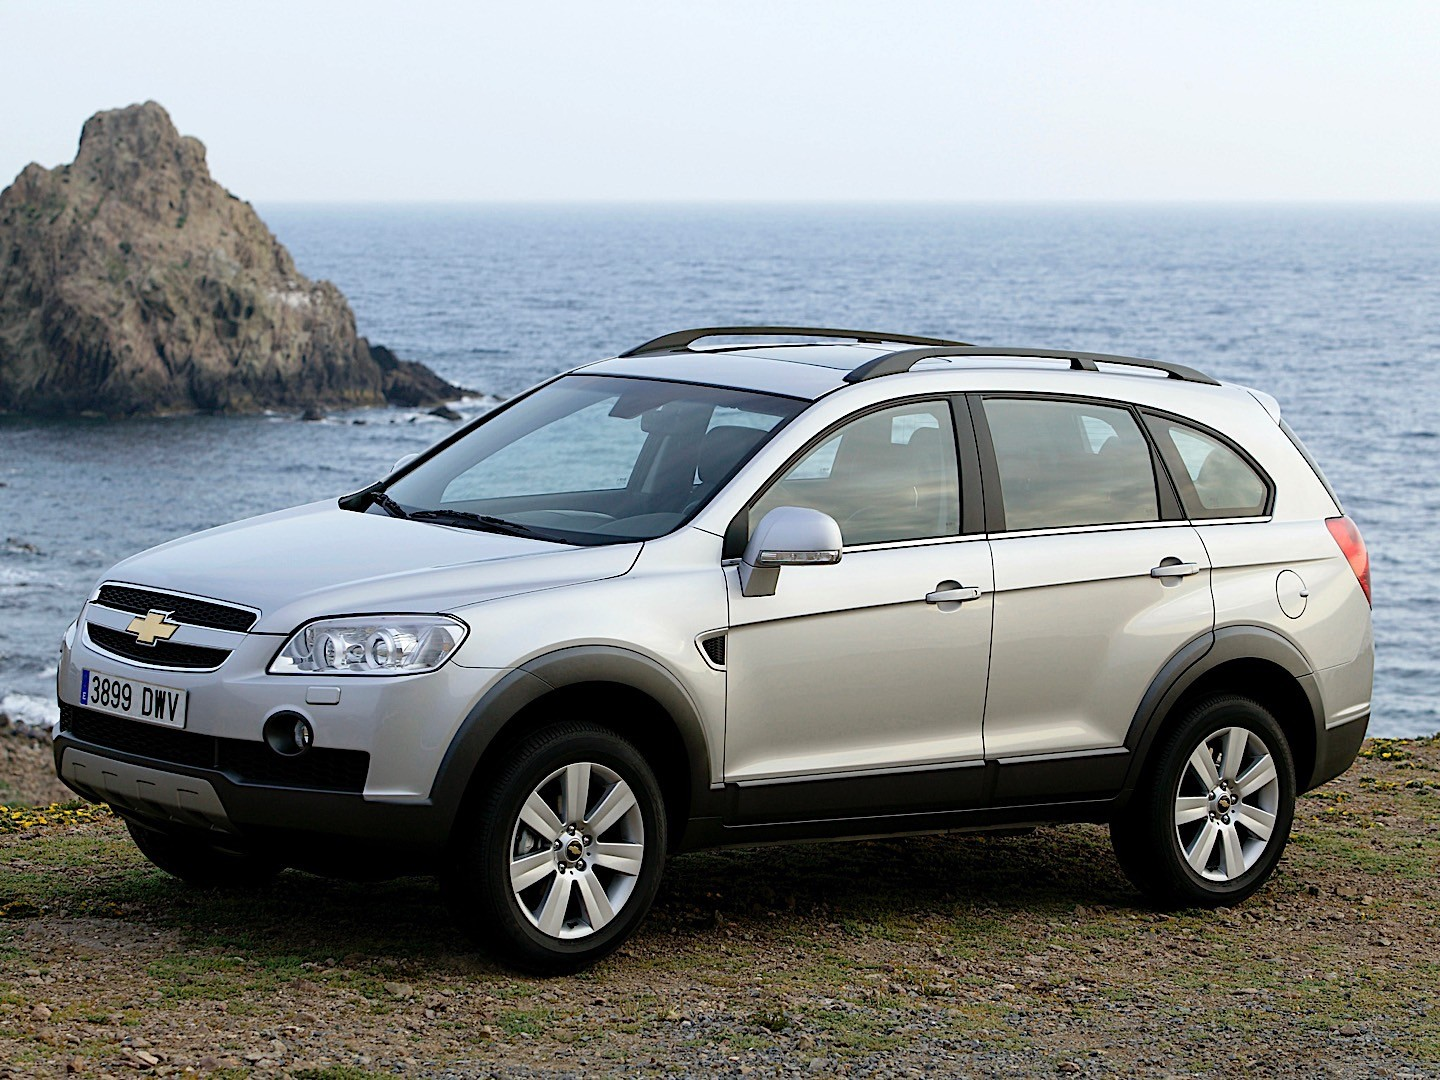 CHEVROLET Captiva specs & photos - 2006, 2007, 2008, 2009 ...